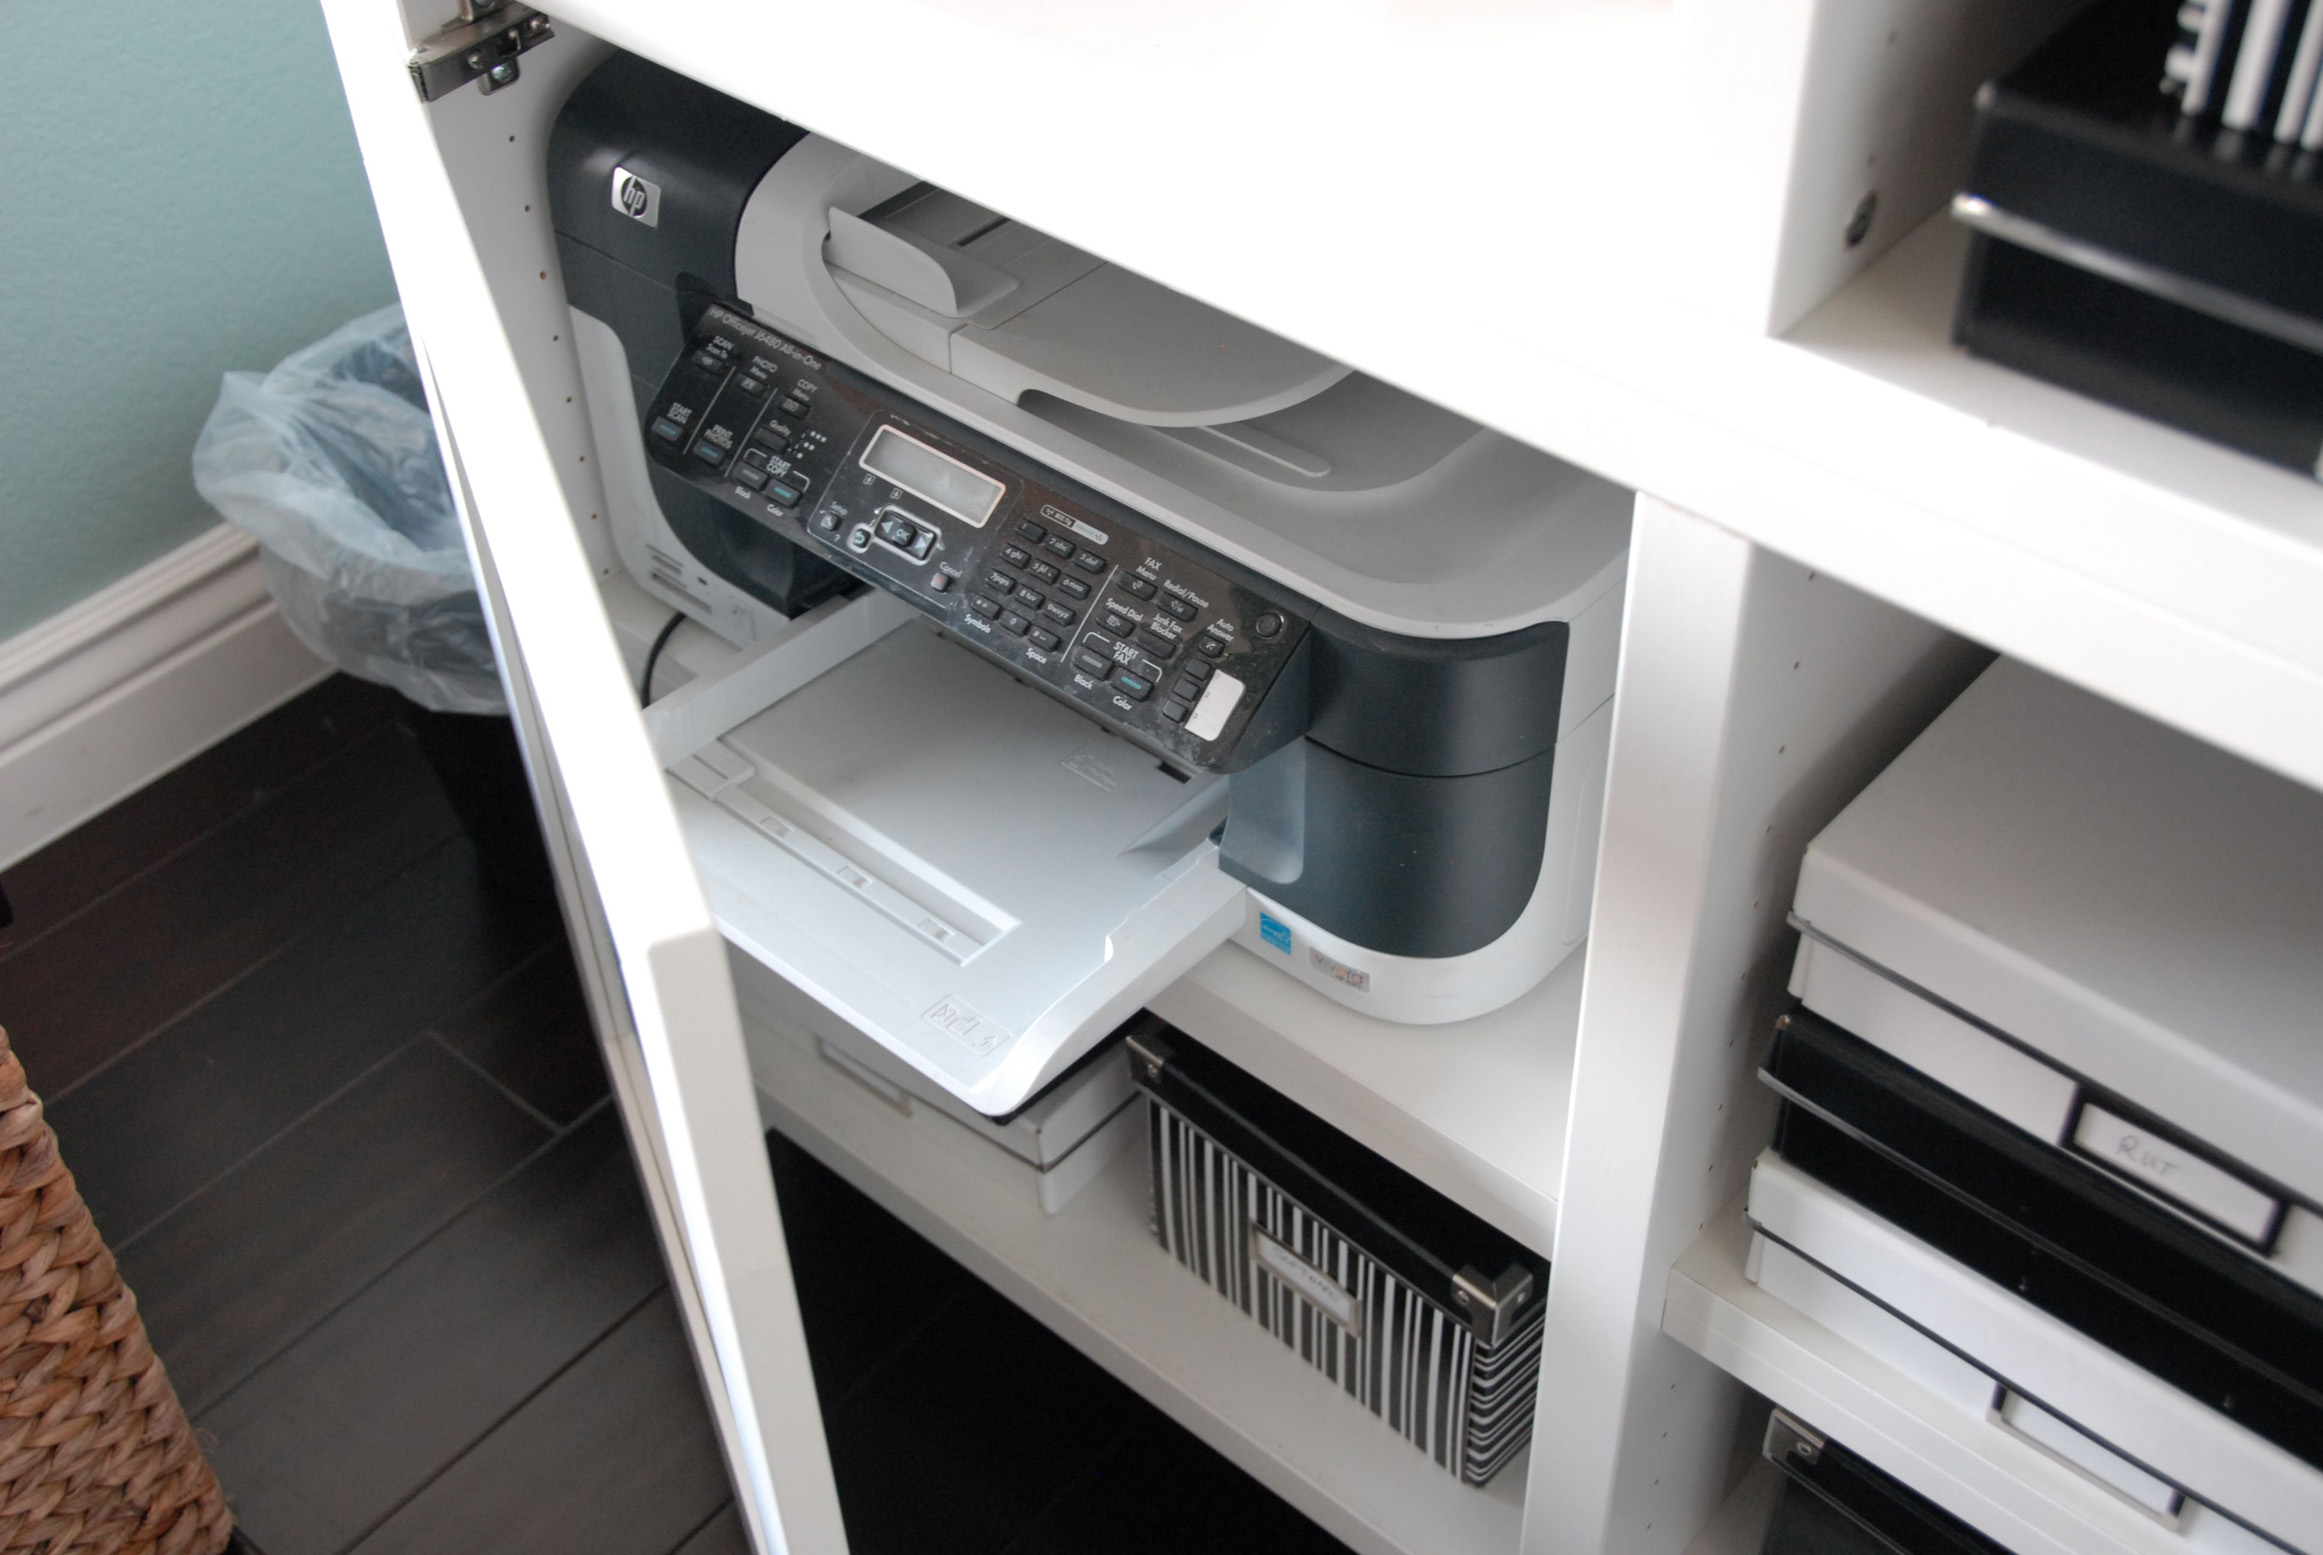 Oopsie... the old printer doesn't fit!